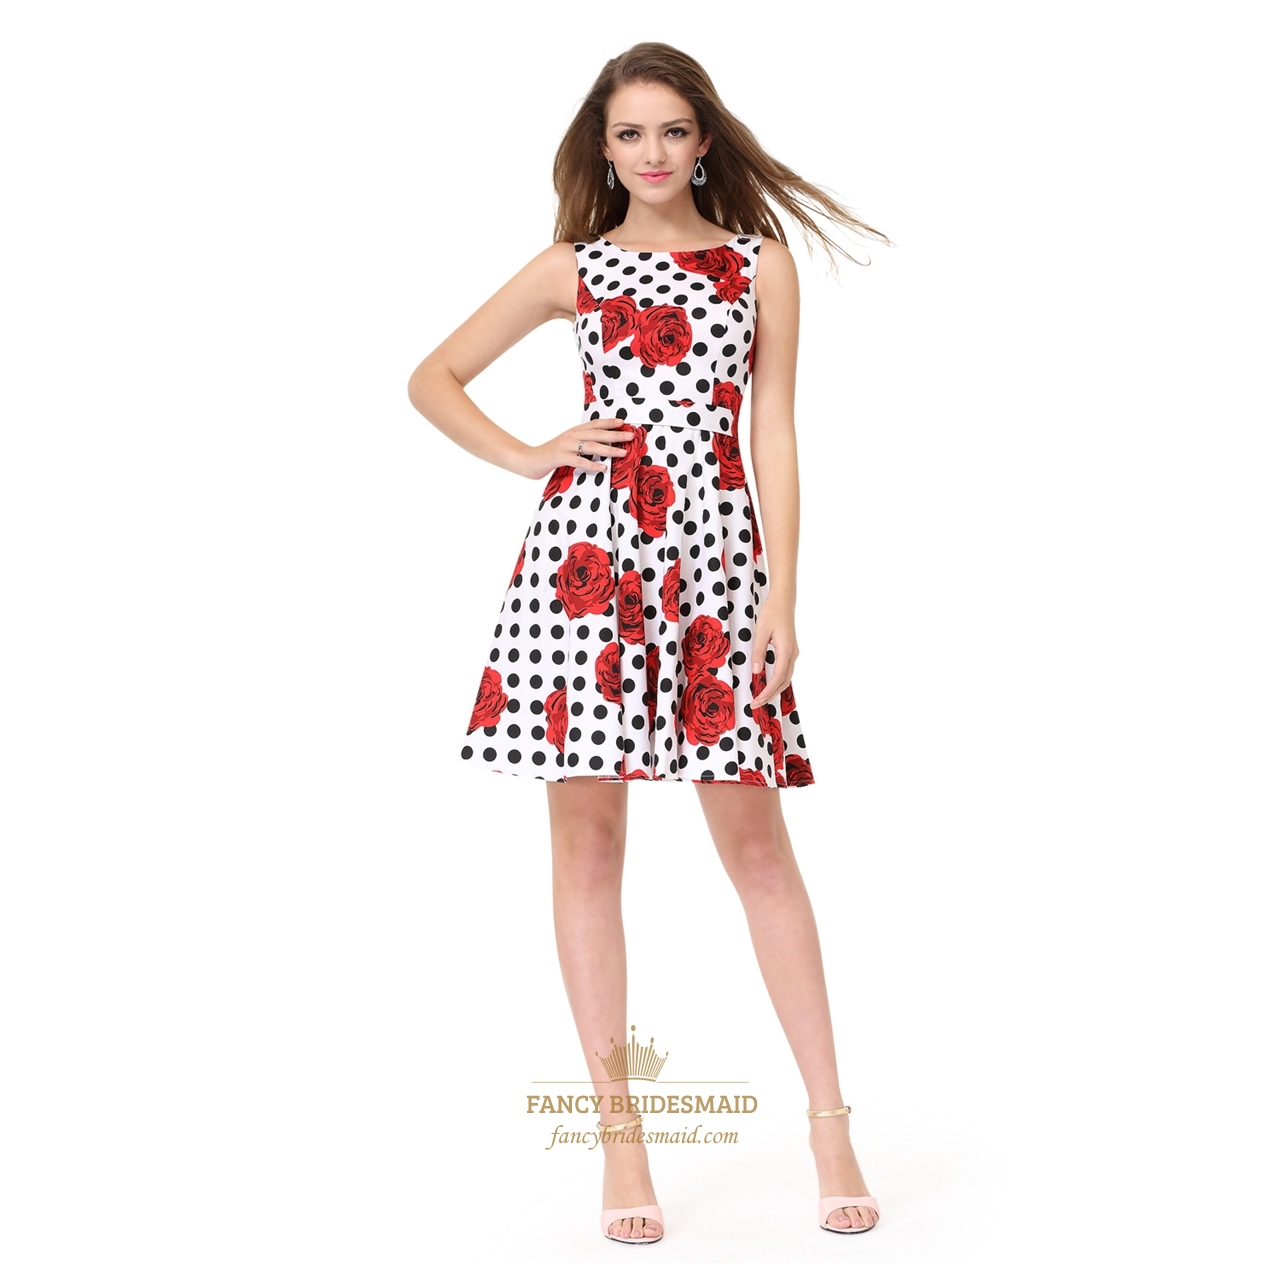 dd9c5b988c09 White Sleeveless A-Line Fit   Flare Skater Dress With Red Floral Print